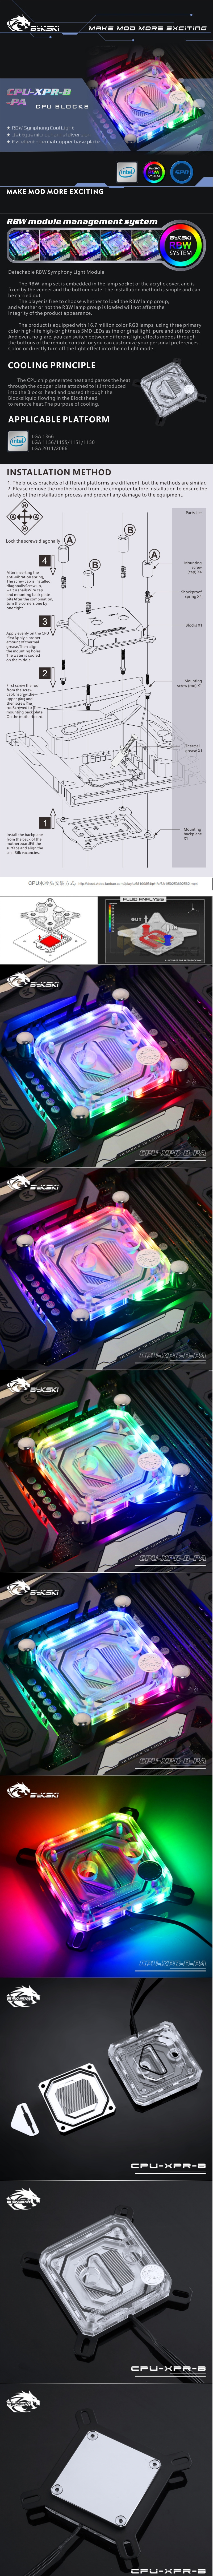 A large marketing image providing additional information about the product Bykski XPR Acrylic RBW LGA115x CPU Waterblock - Additional alt info not provided